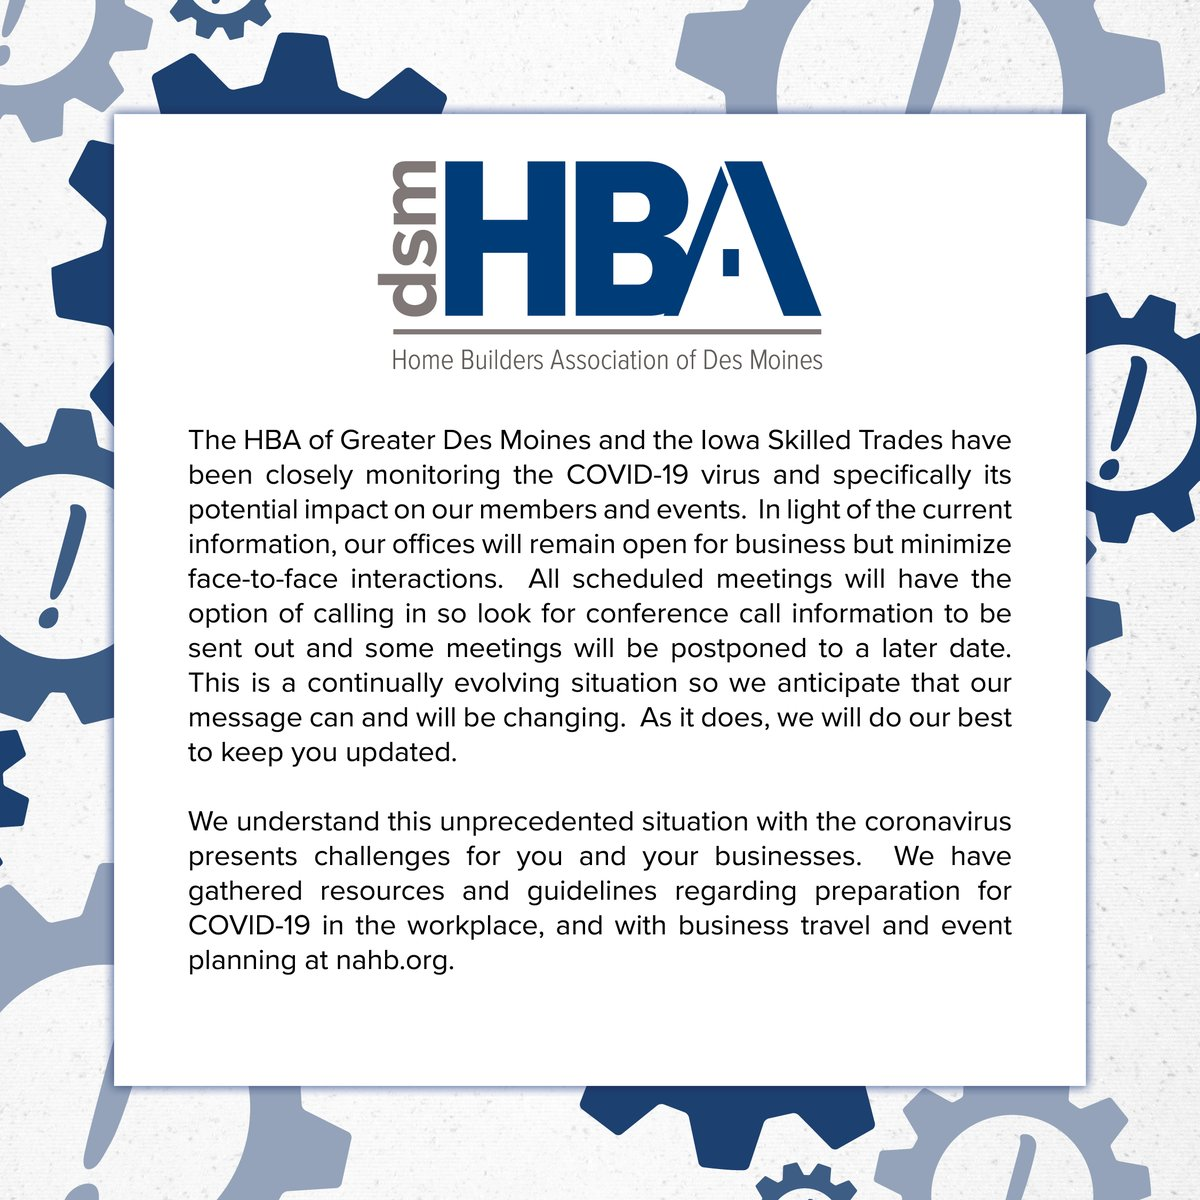 Here is the Home Builders Association of Greater Des Moines statement on COVID-19. If you have any questions you can contact our staff anytime.   #dsmhba #homebuildersassociation #covid19 #catchdesmoines #desmoines #iowapic.twitter.com/m0SEJFAxxv